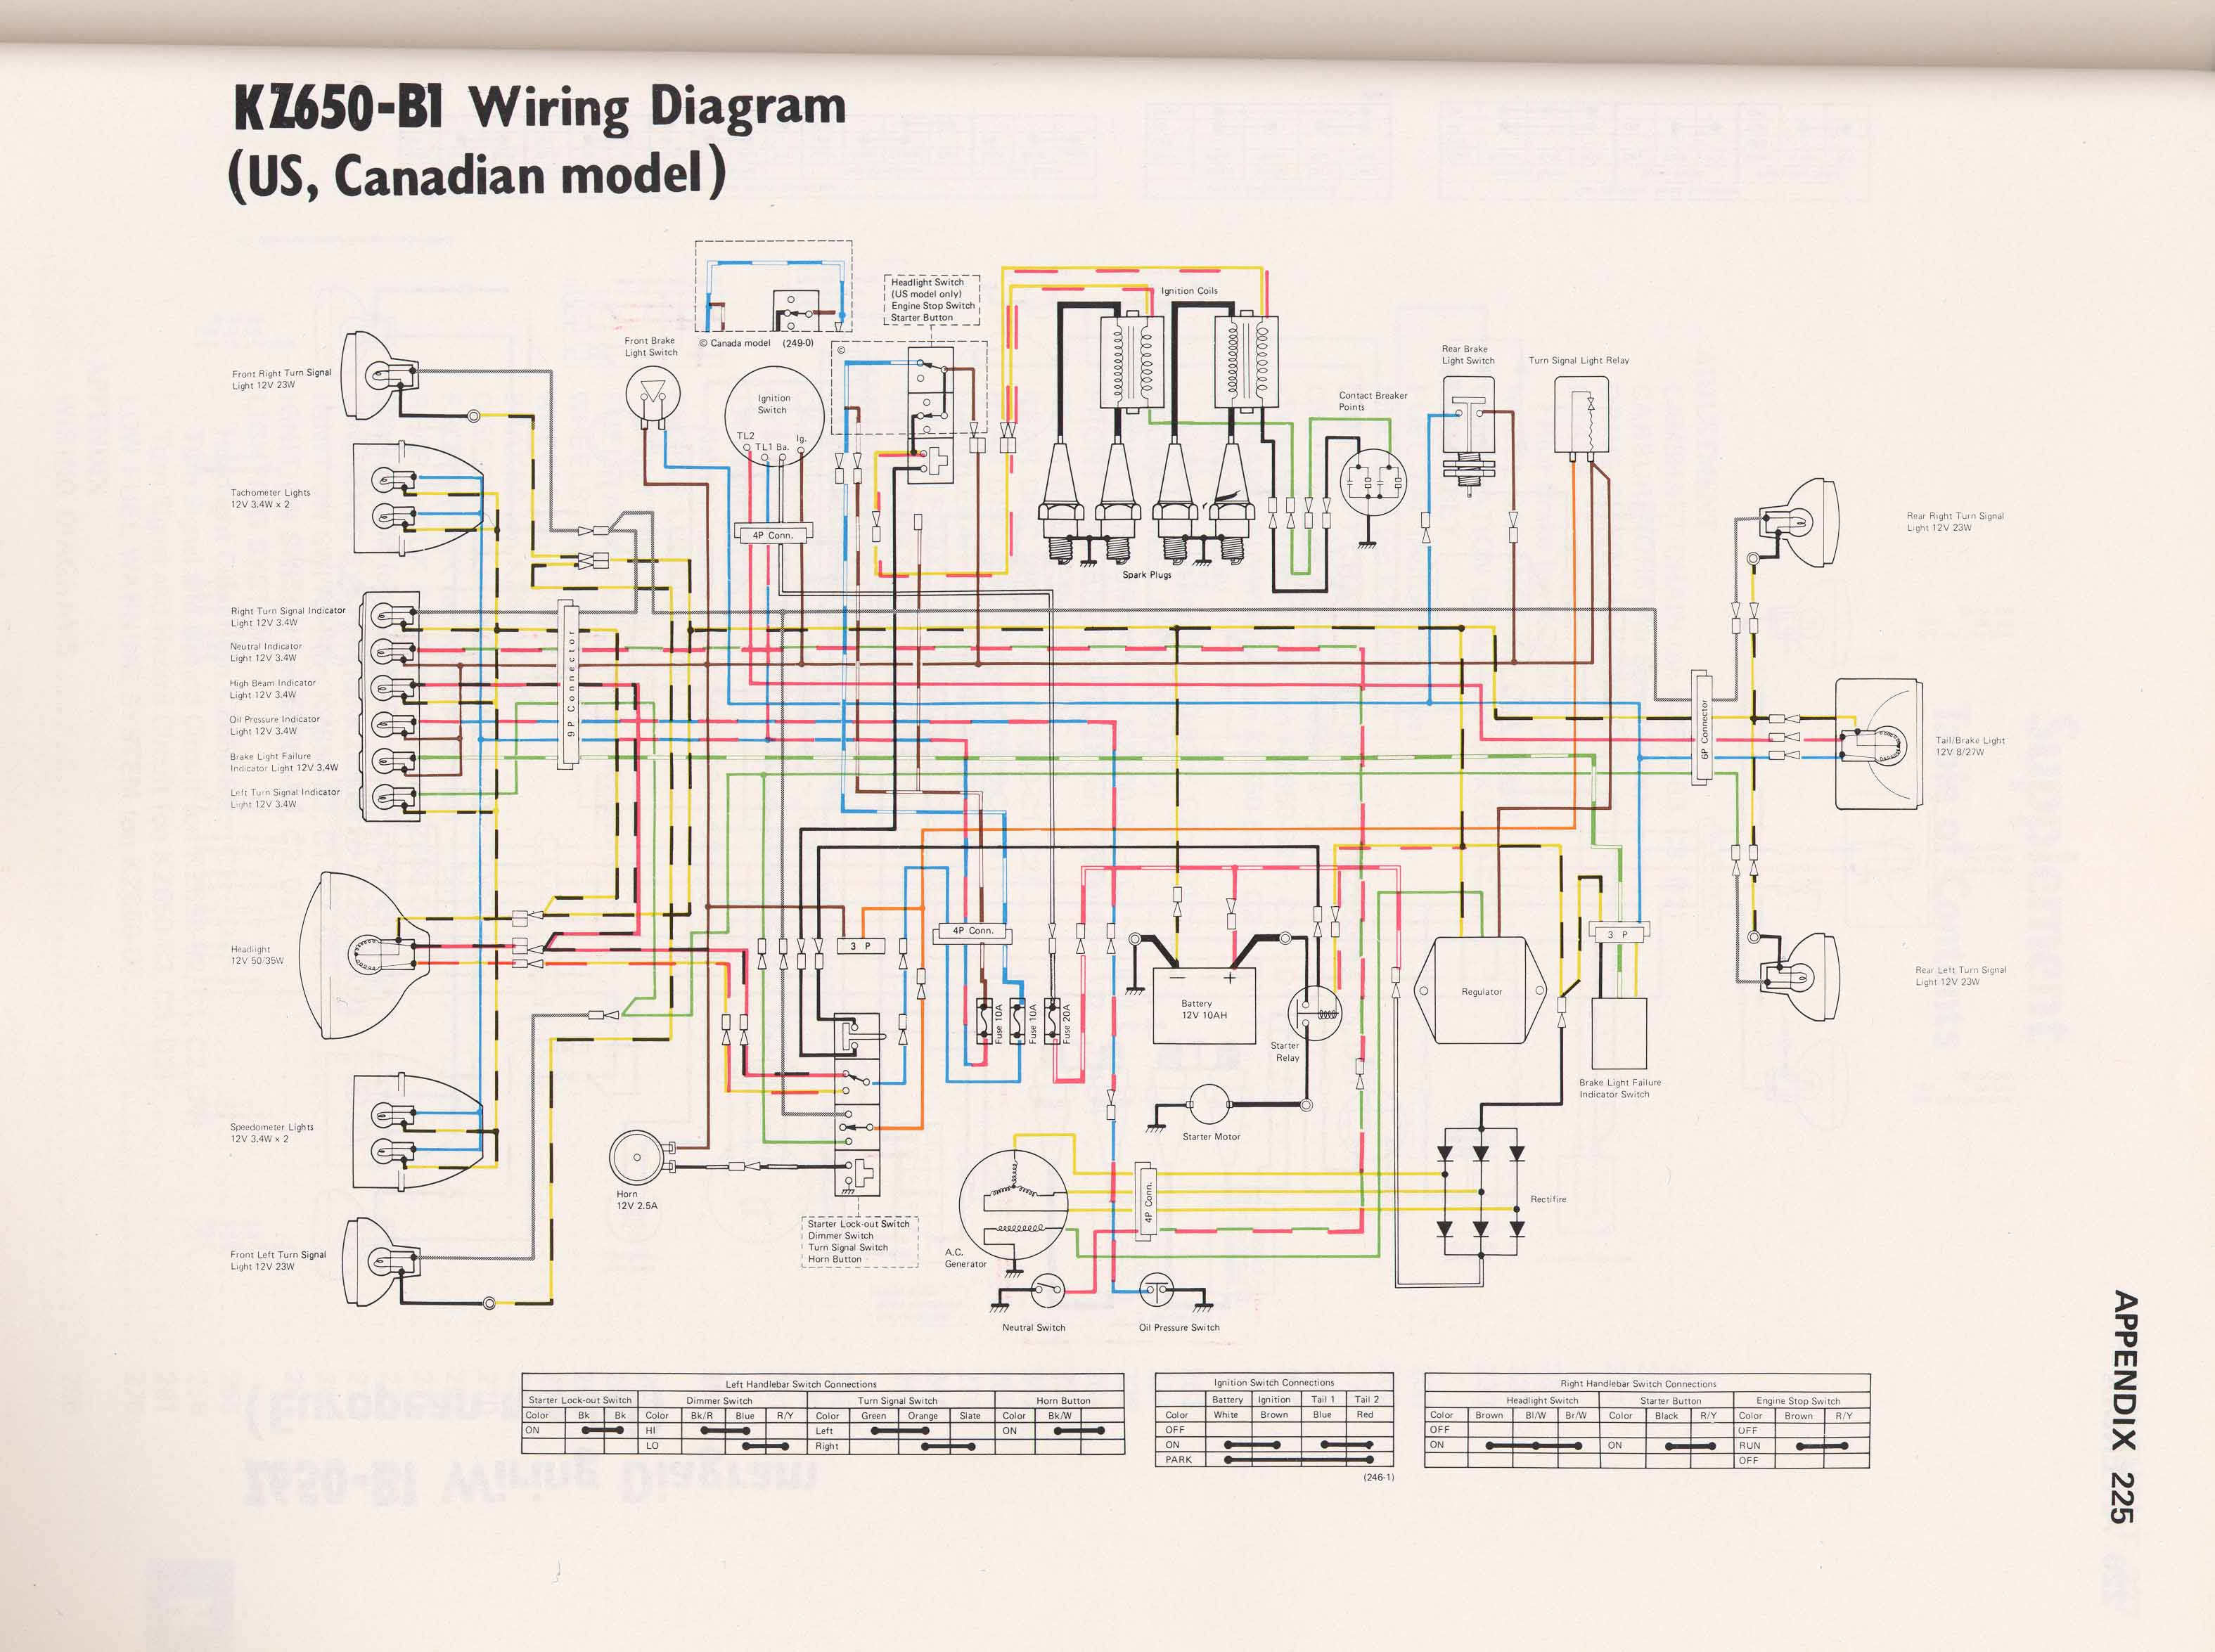 KZ650 B1 2000 kawasaki voyager 1200 wiring diagram 100 images diagrams kawasaki voyager xii wiring diagram at panicattacktreatment.co